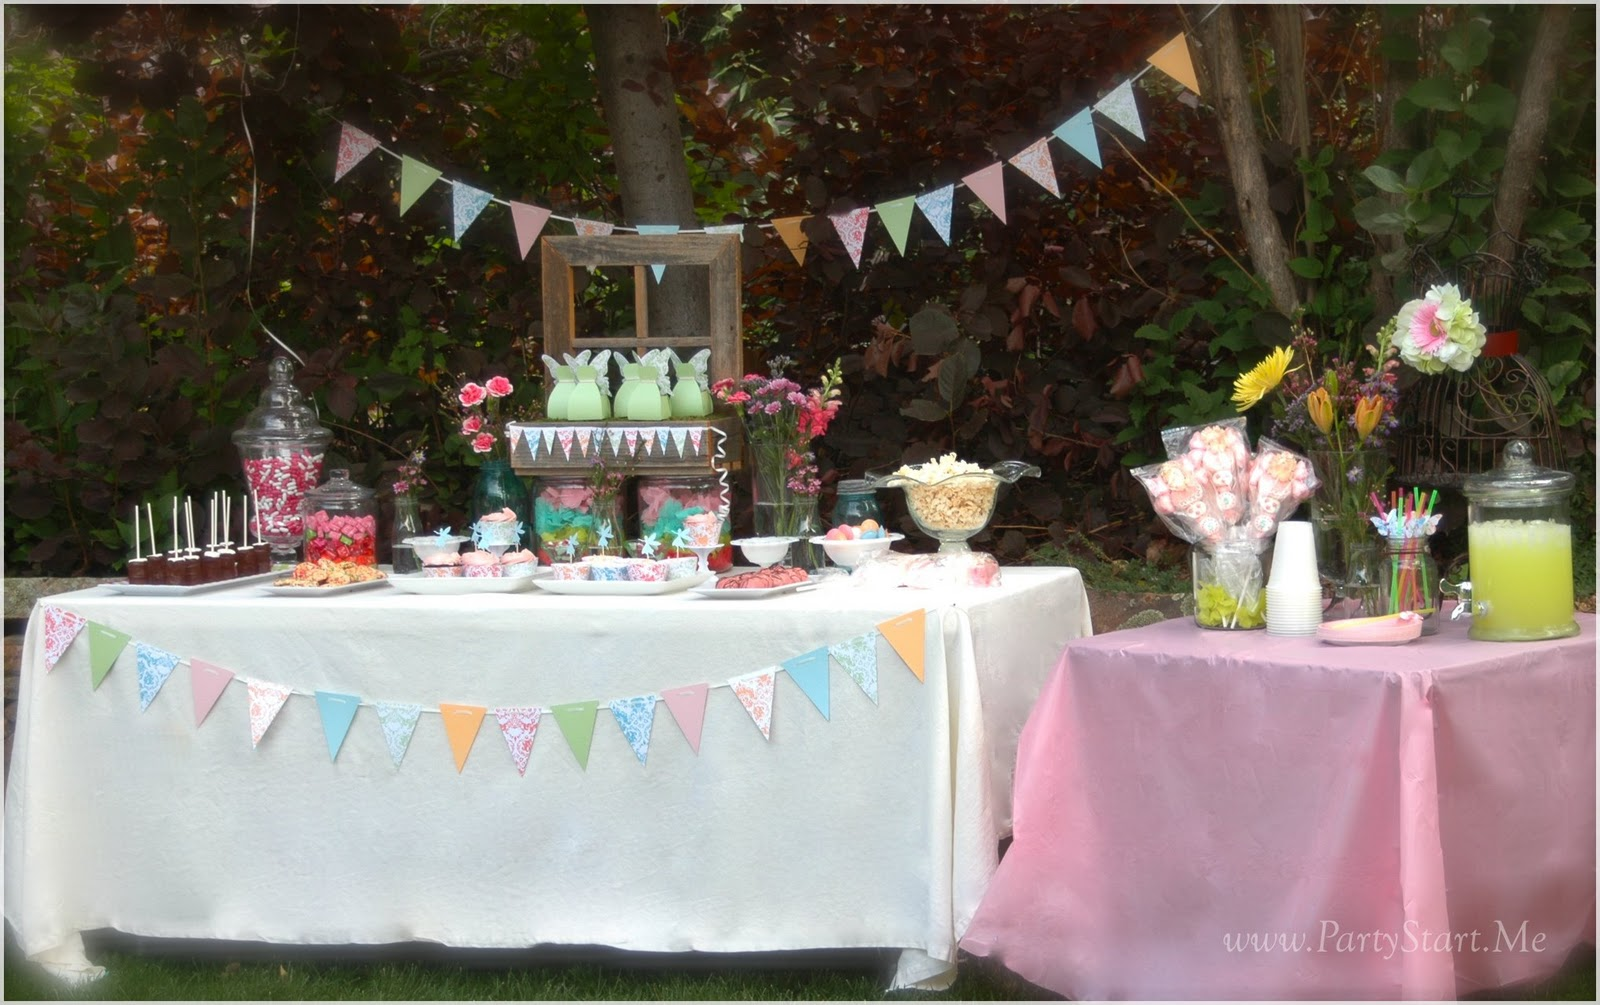 Pamela Smerker Designs: Shabby Chic Fairy Party